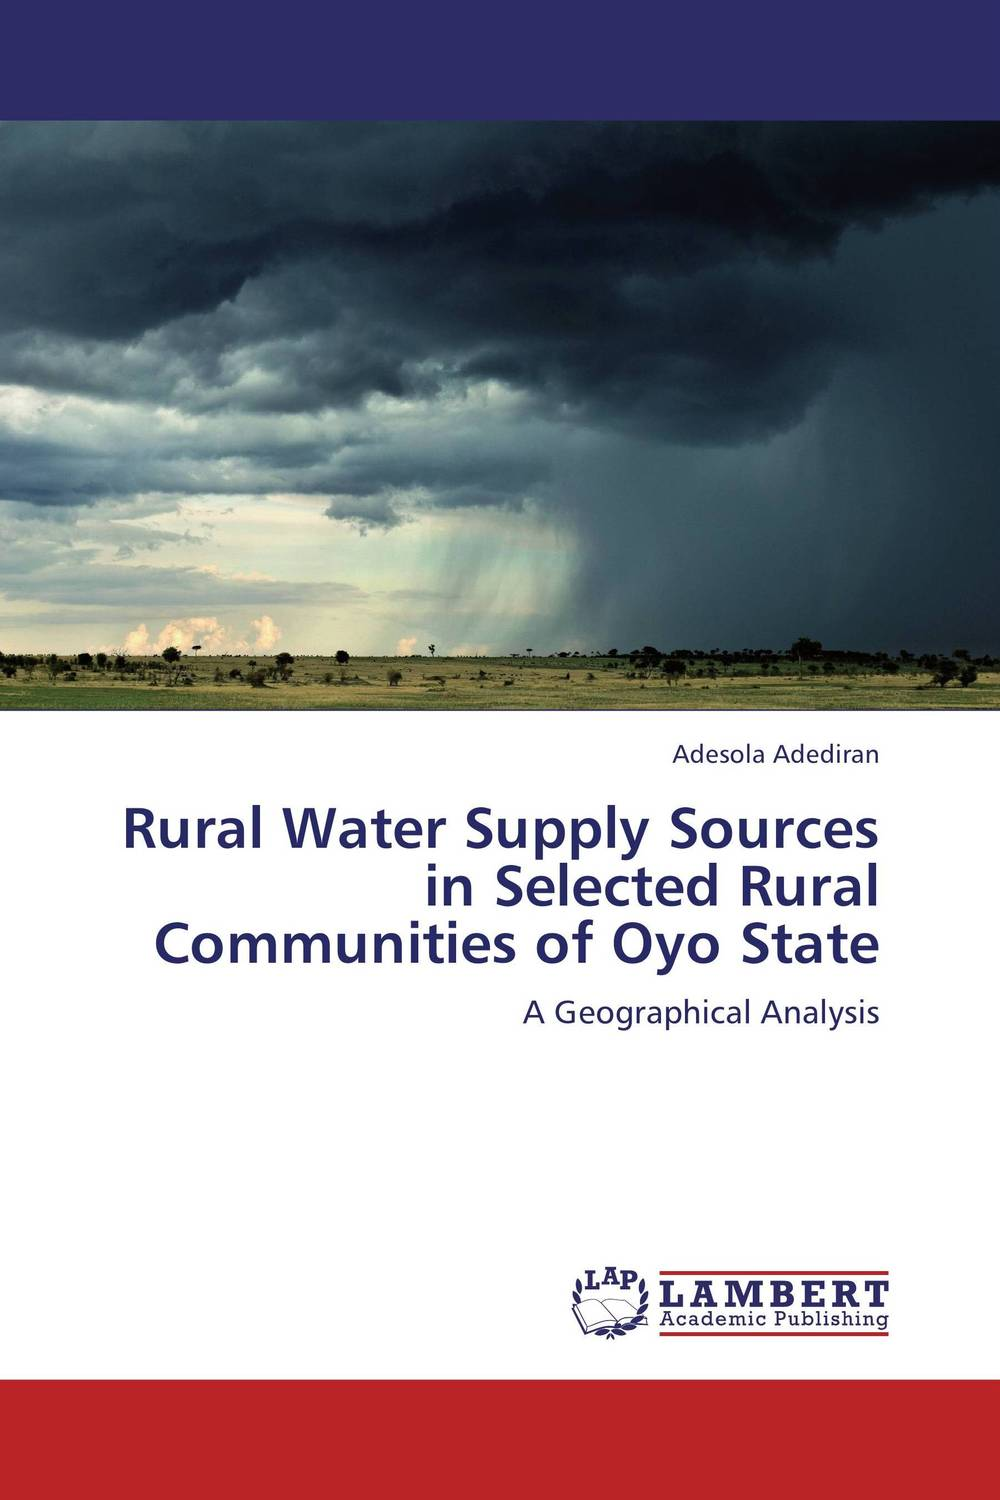 Rural Water Supply Sources in Selected Rural Communities of Oyo State a requirement model of local news application for rural communities